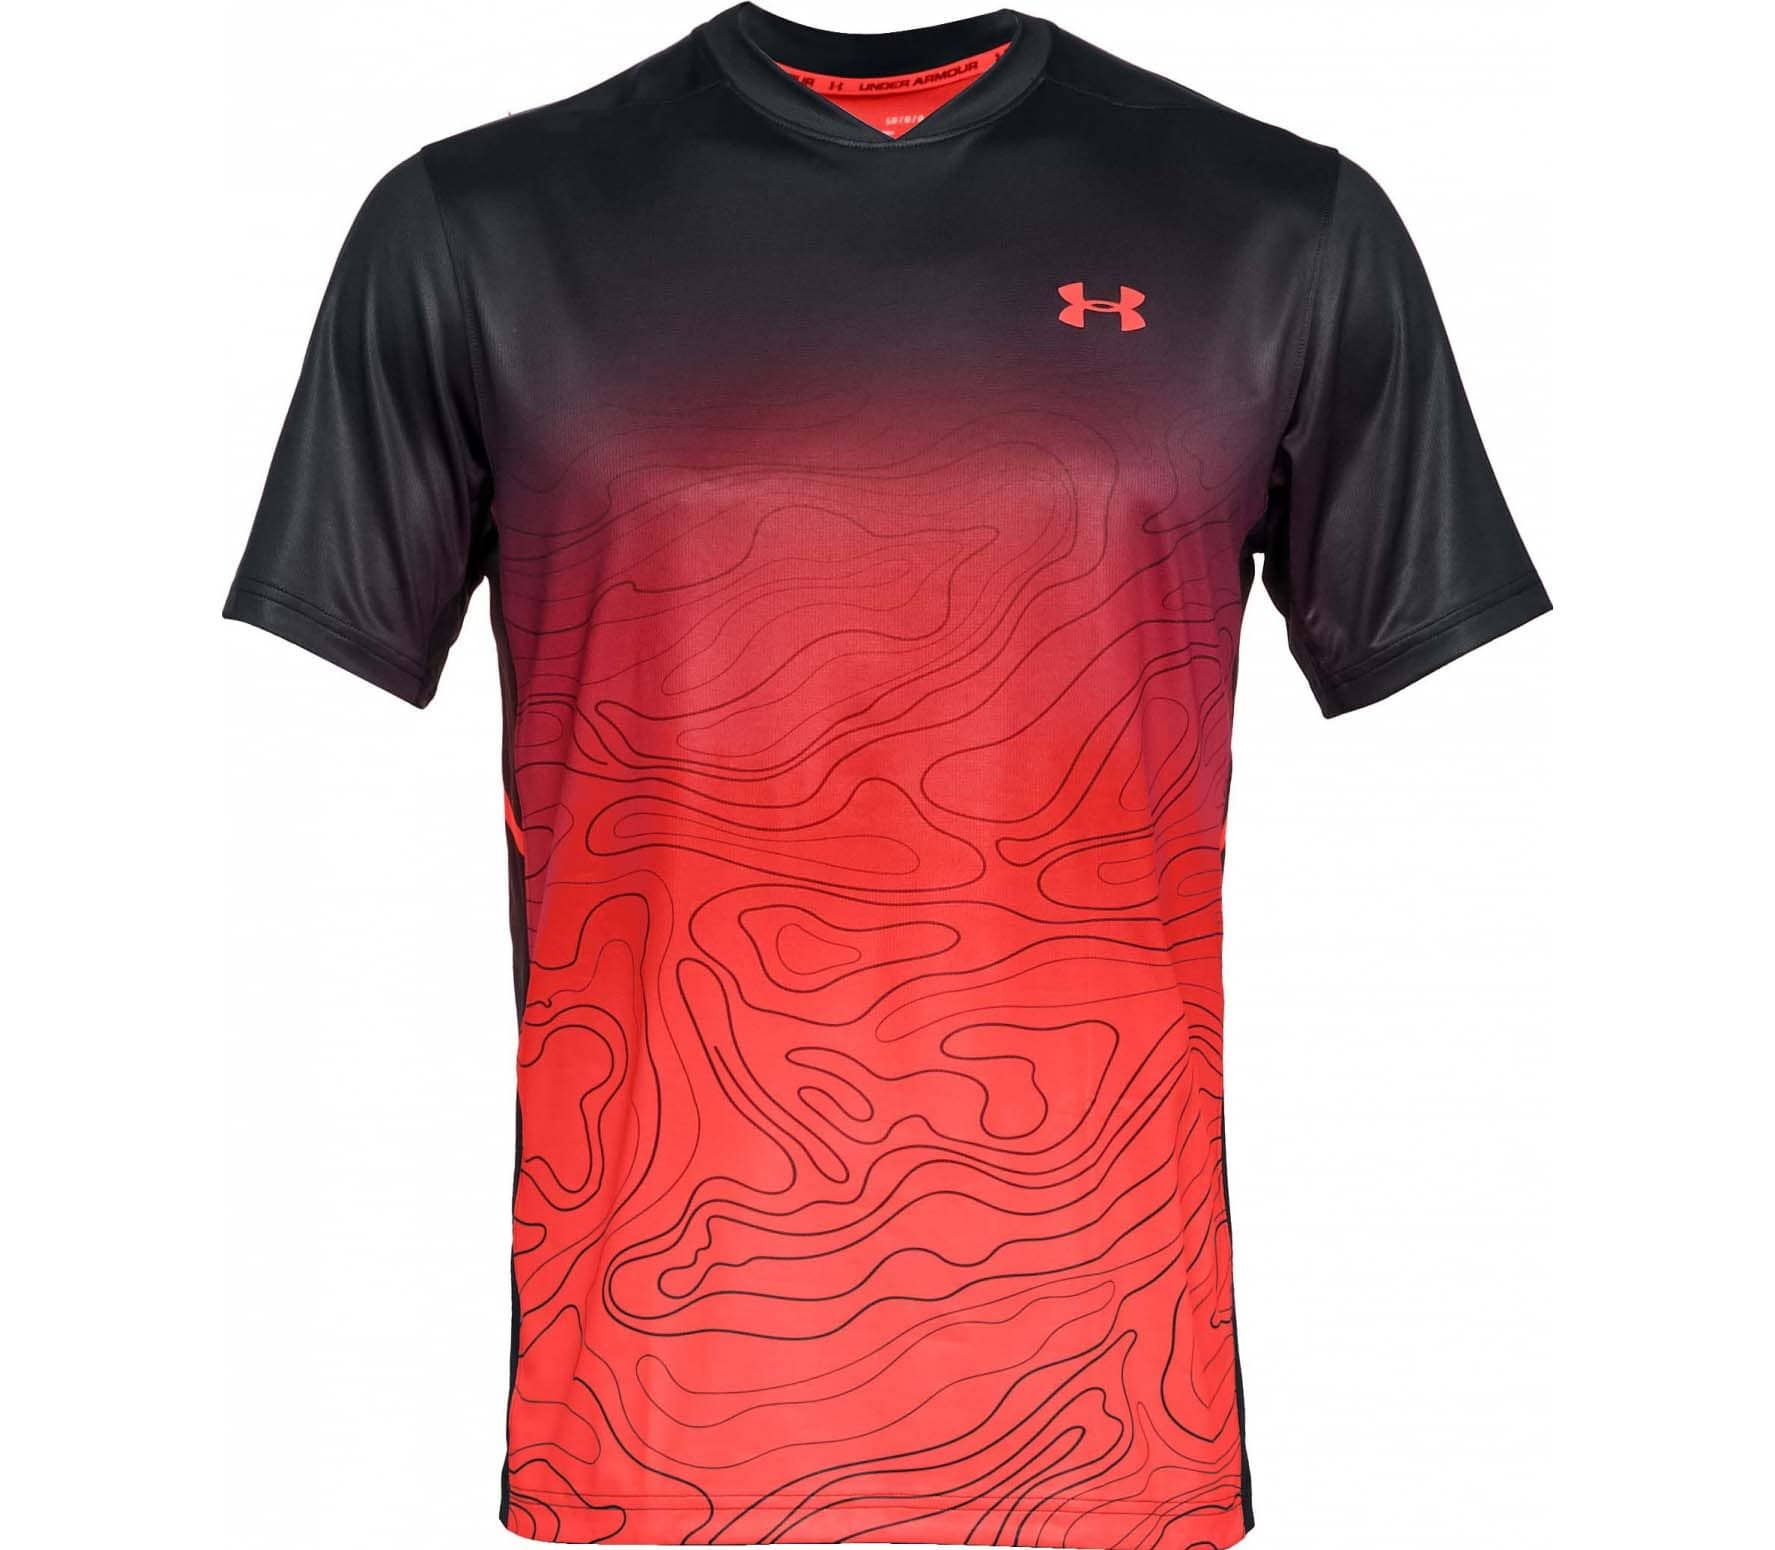 e6db8a8b Under Armour - Forge Ss Crew men's tennis top (black/red) - buy it ...